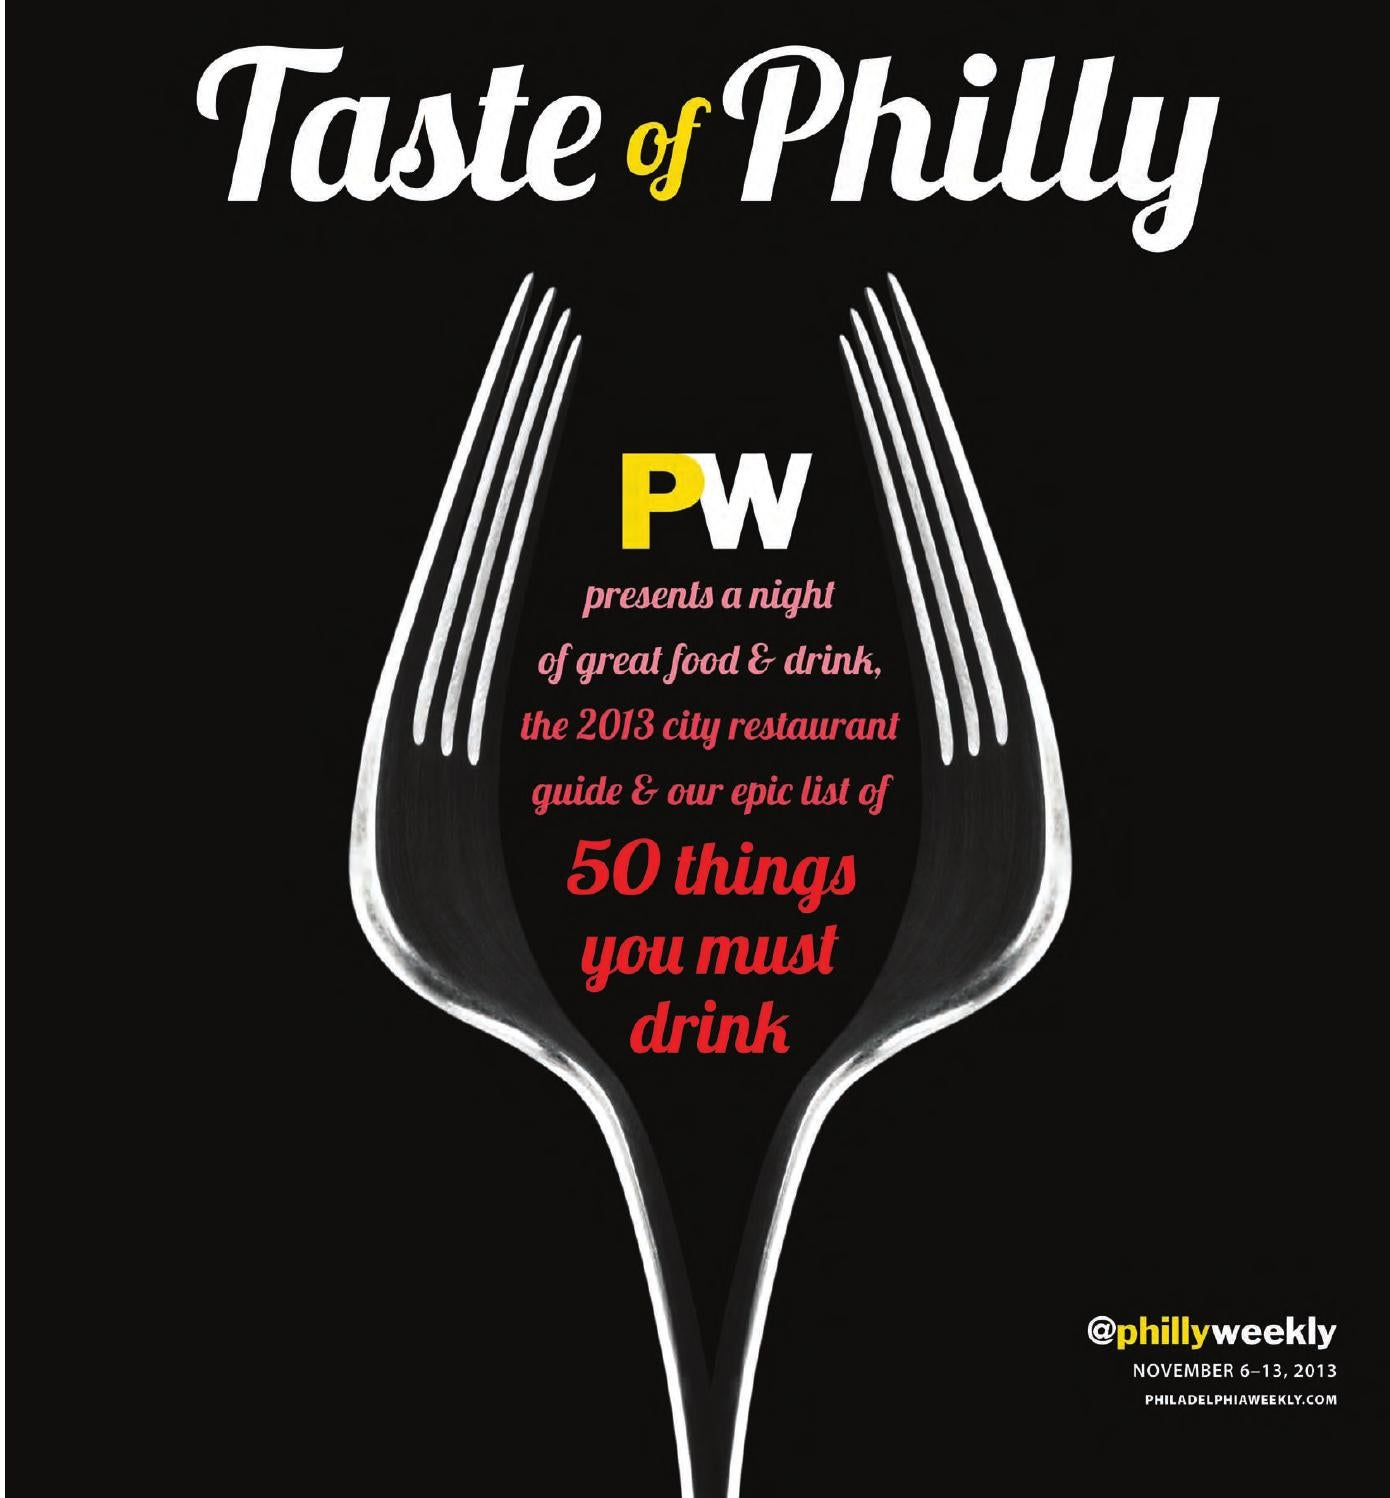 Philadelphia Weekly 11-6-2013 by Philadelphia Weekly - issuu 125800fa0fe